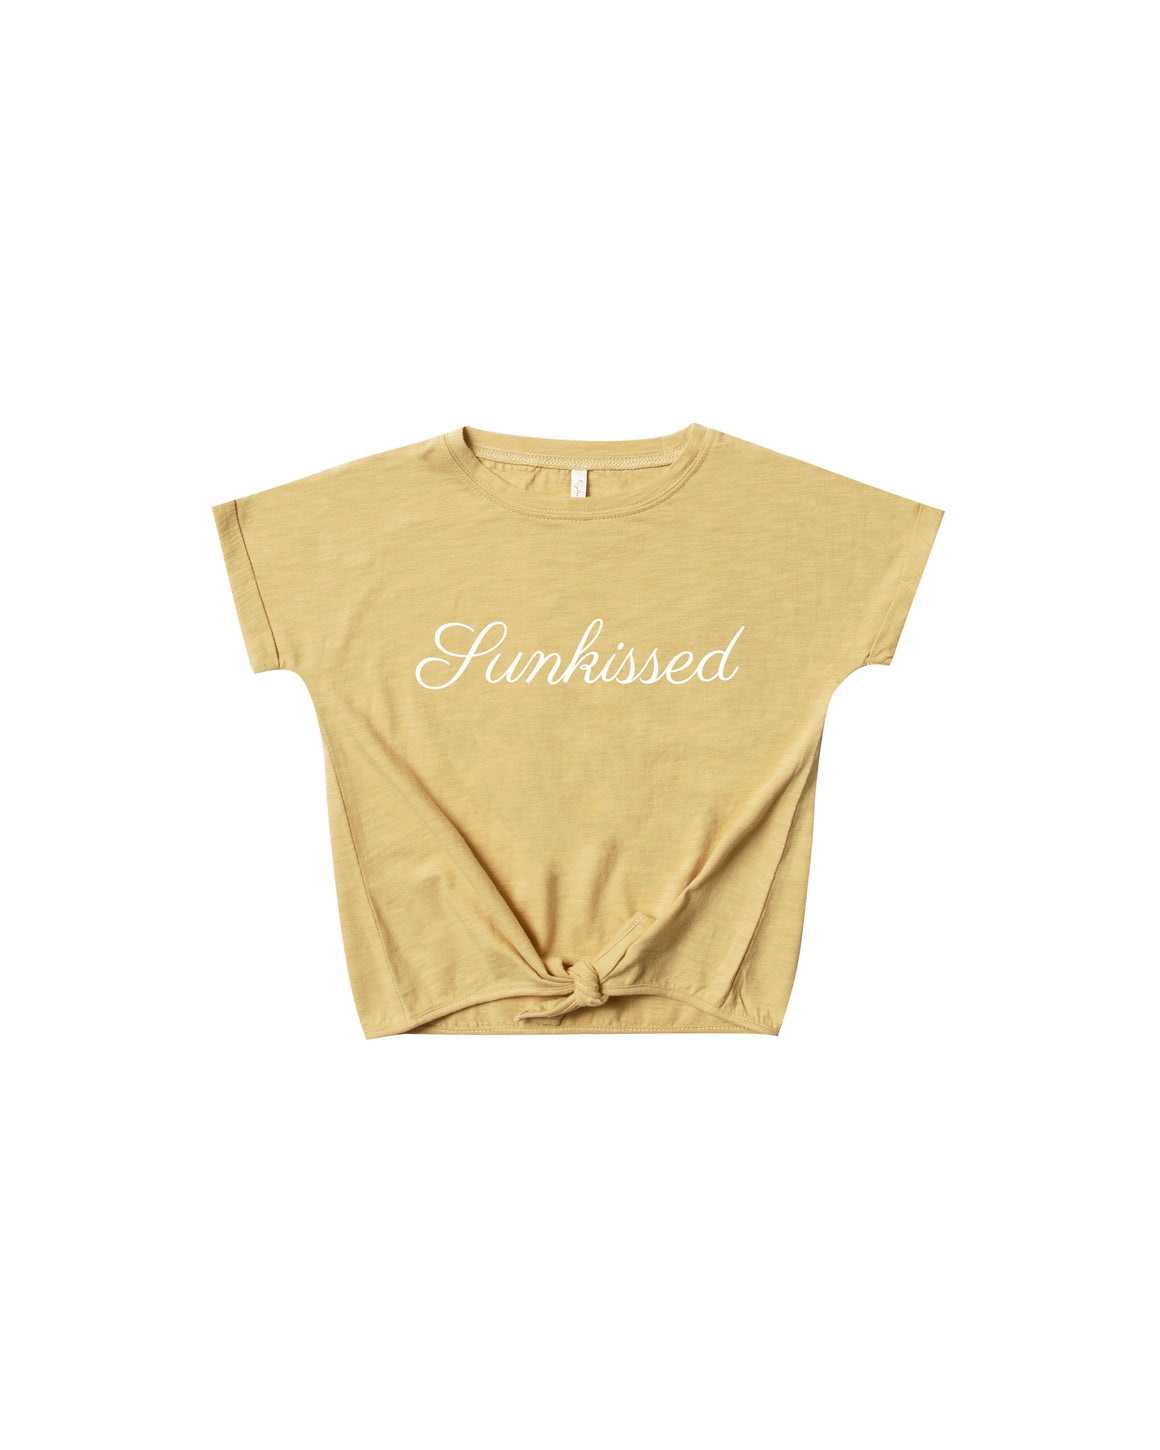 Sunkissed Knotted Tee